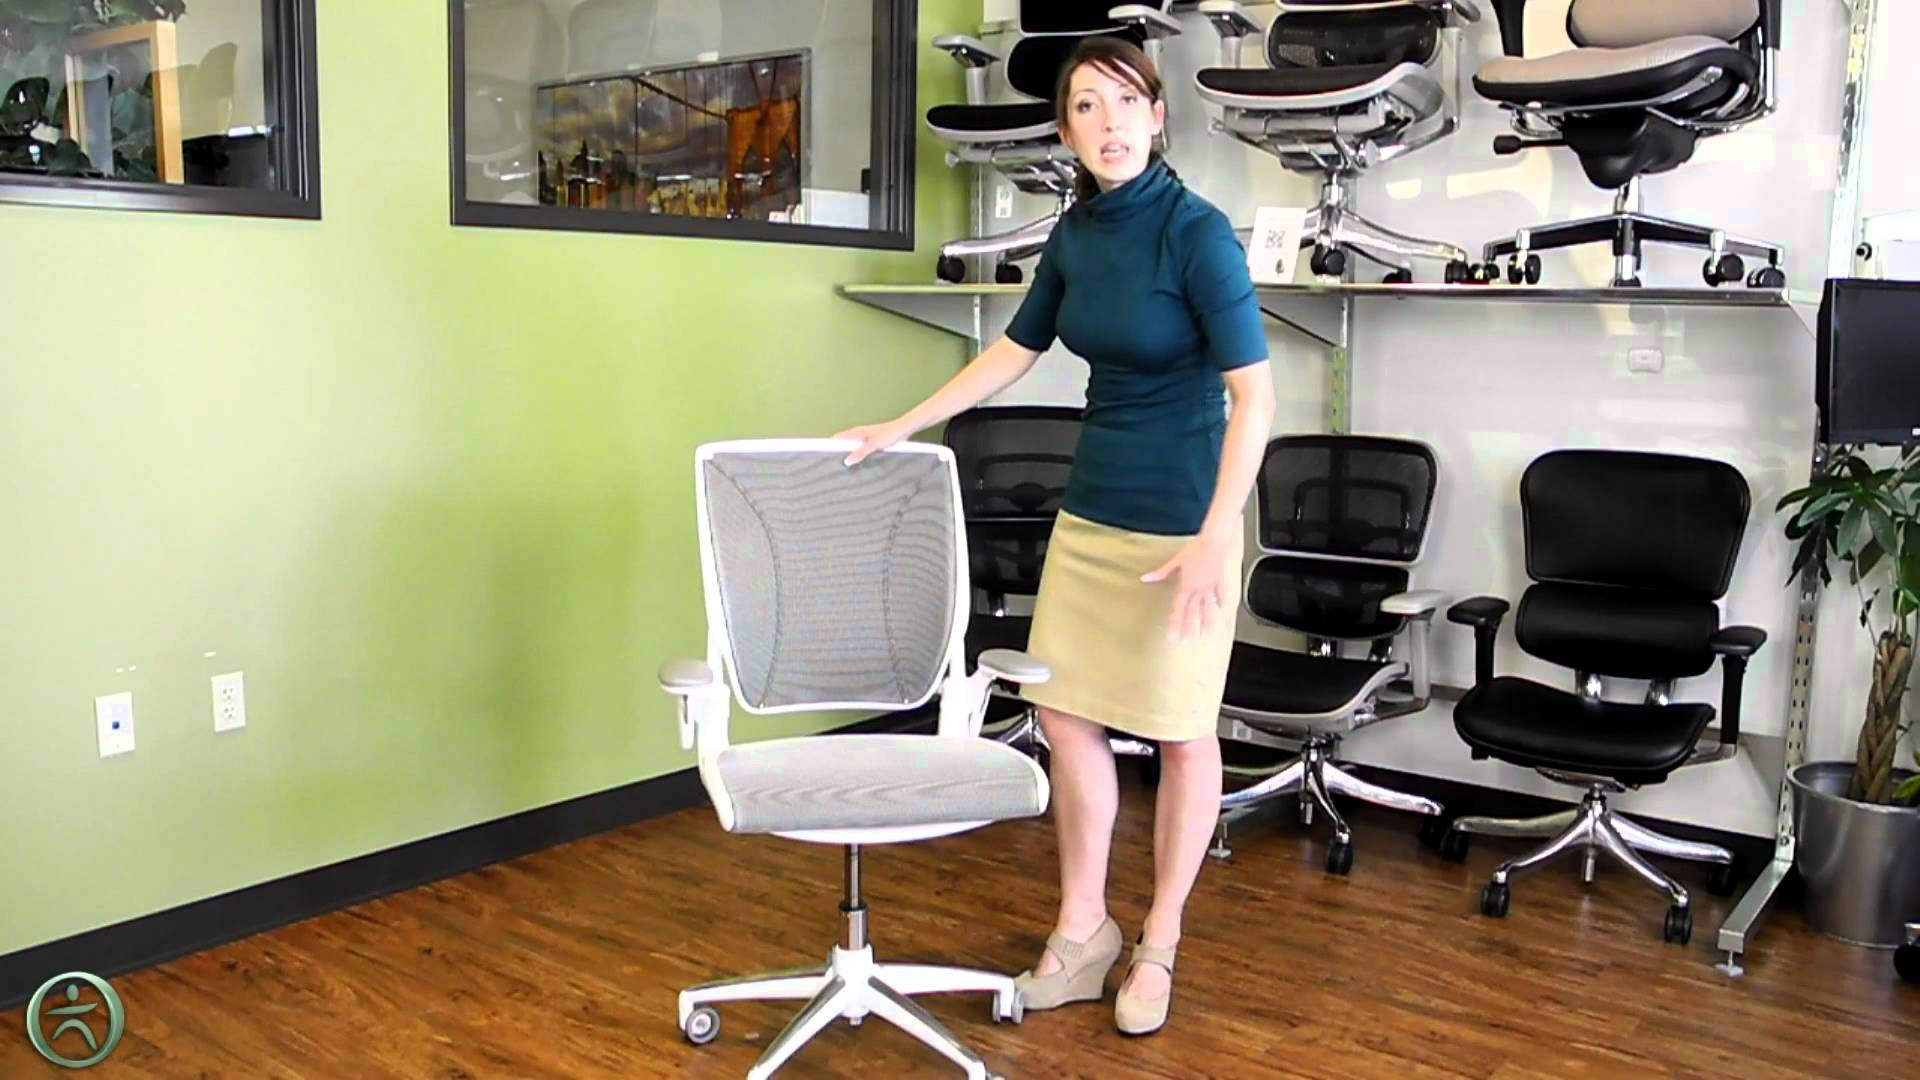 Humanscale Freedom Chair | Freedom Chair Humanscale | Humanscale Freedom Chair with Headrest